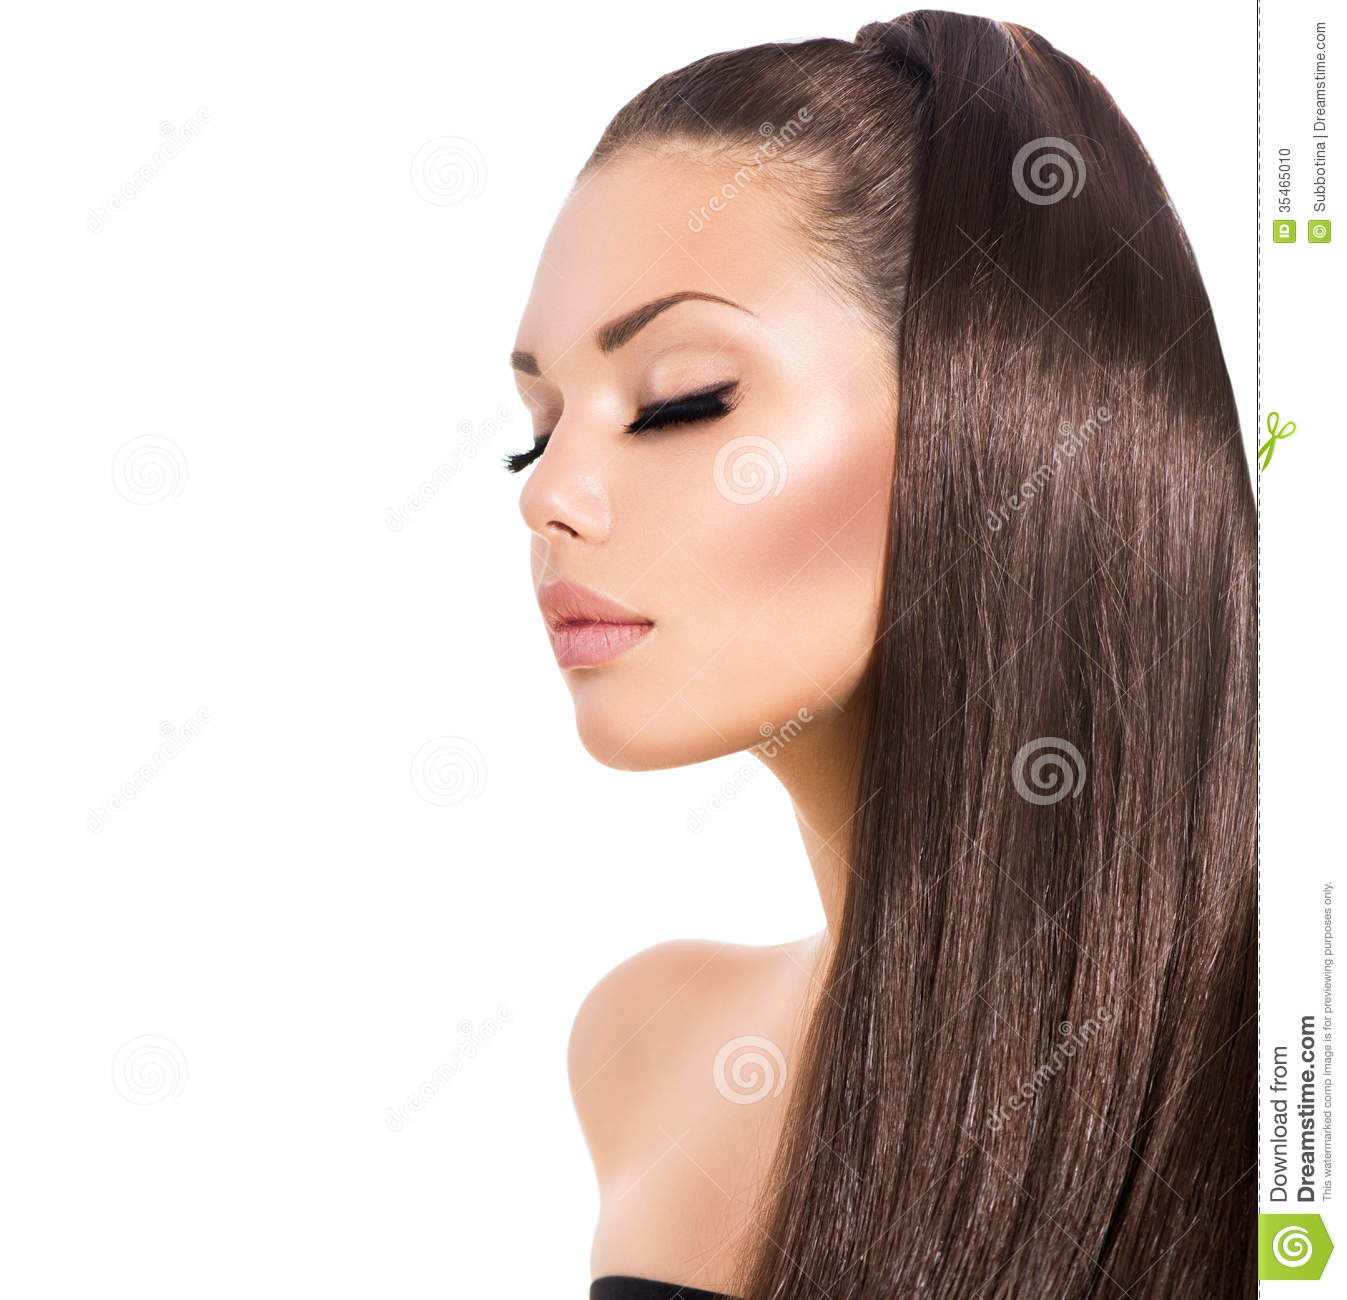 beautiful model with long curly hair stock image - image of clean